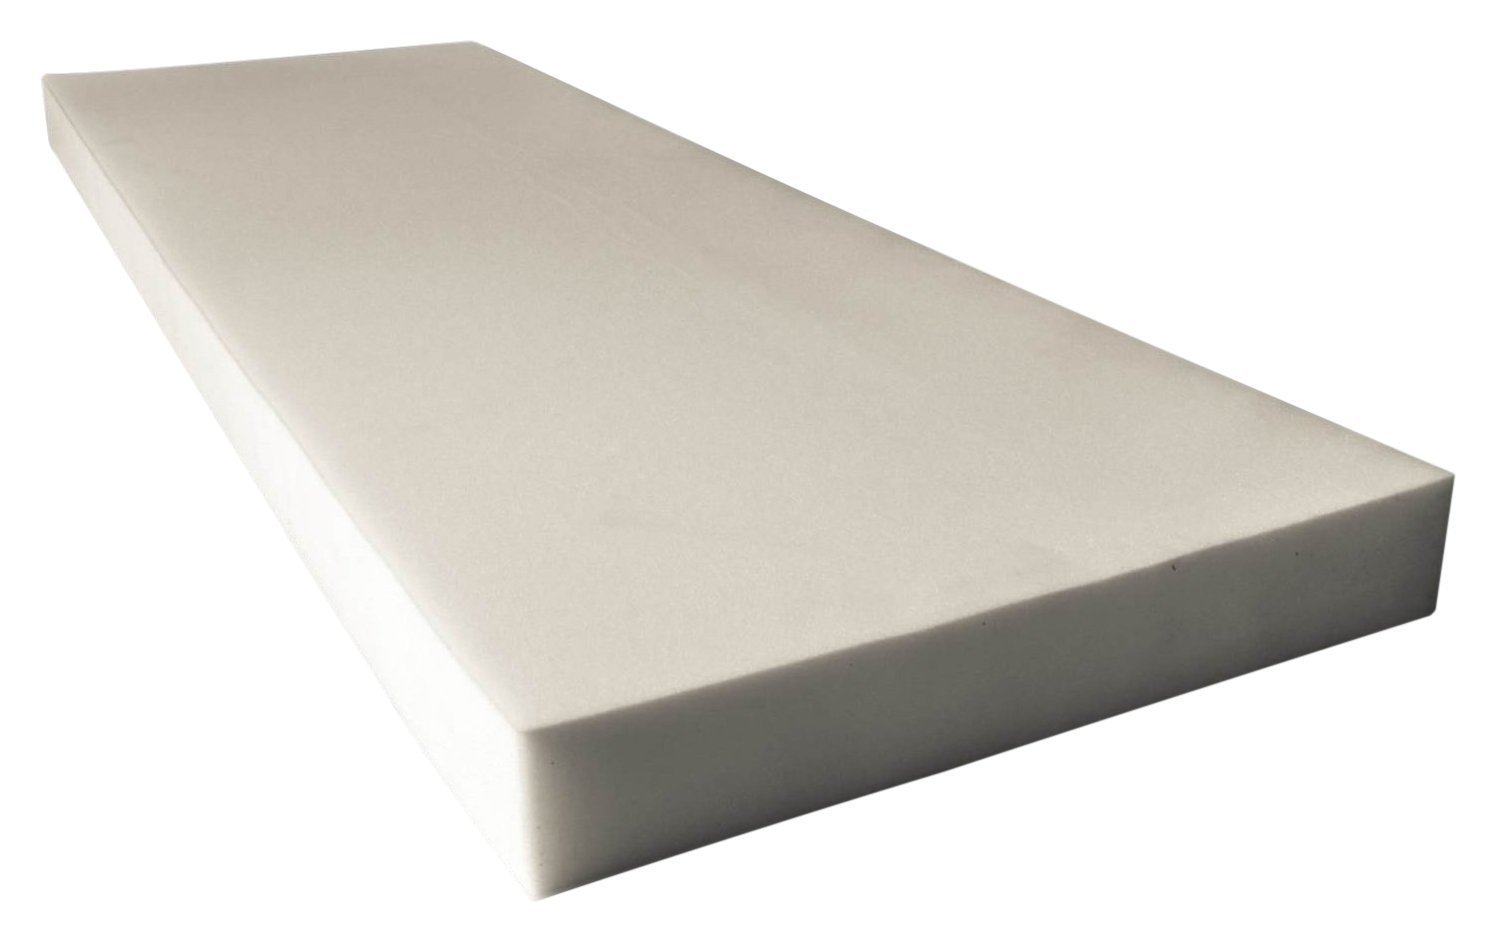 Professional 5'' X 48'' X 40'' Pallet Size Upholstery Foam Cushion (Seat Replacement , Upholstery Sheet)